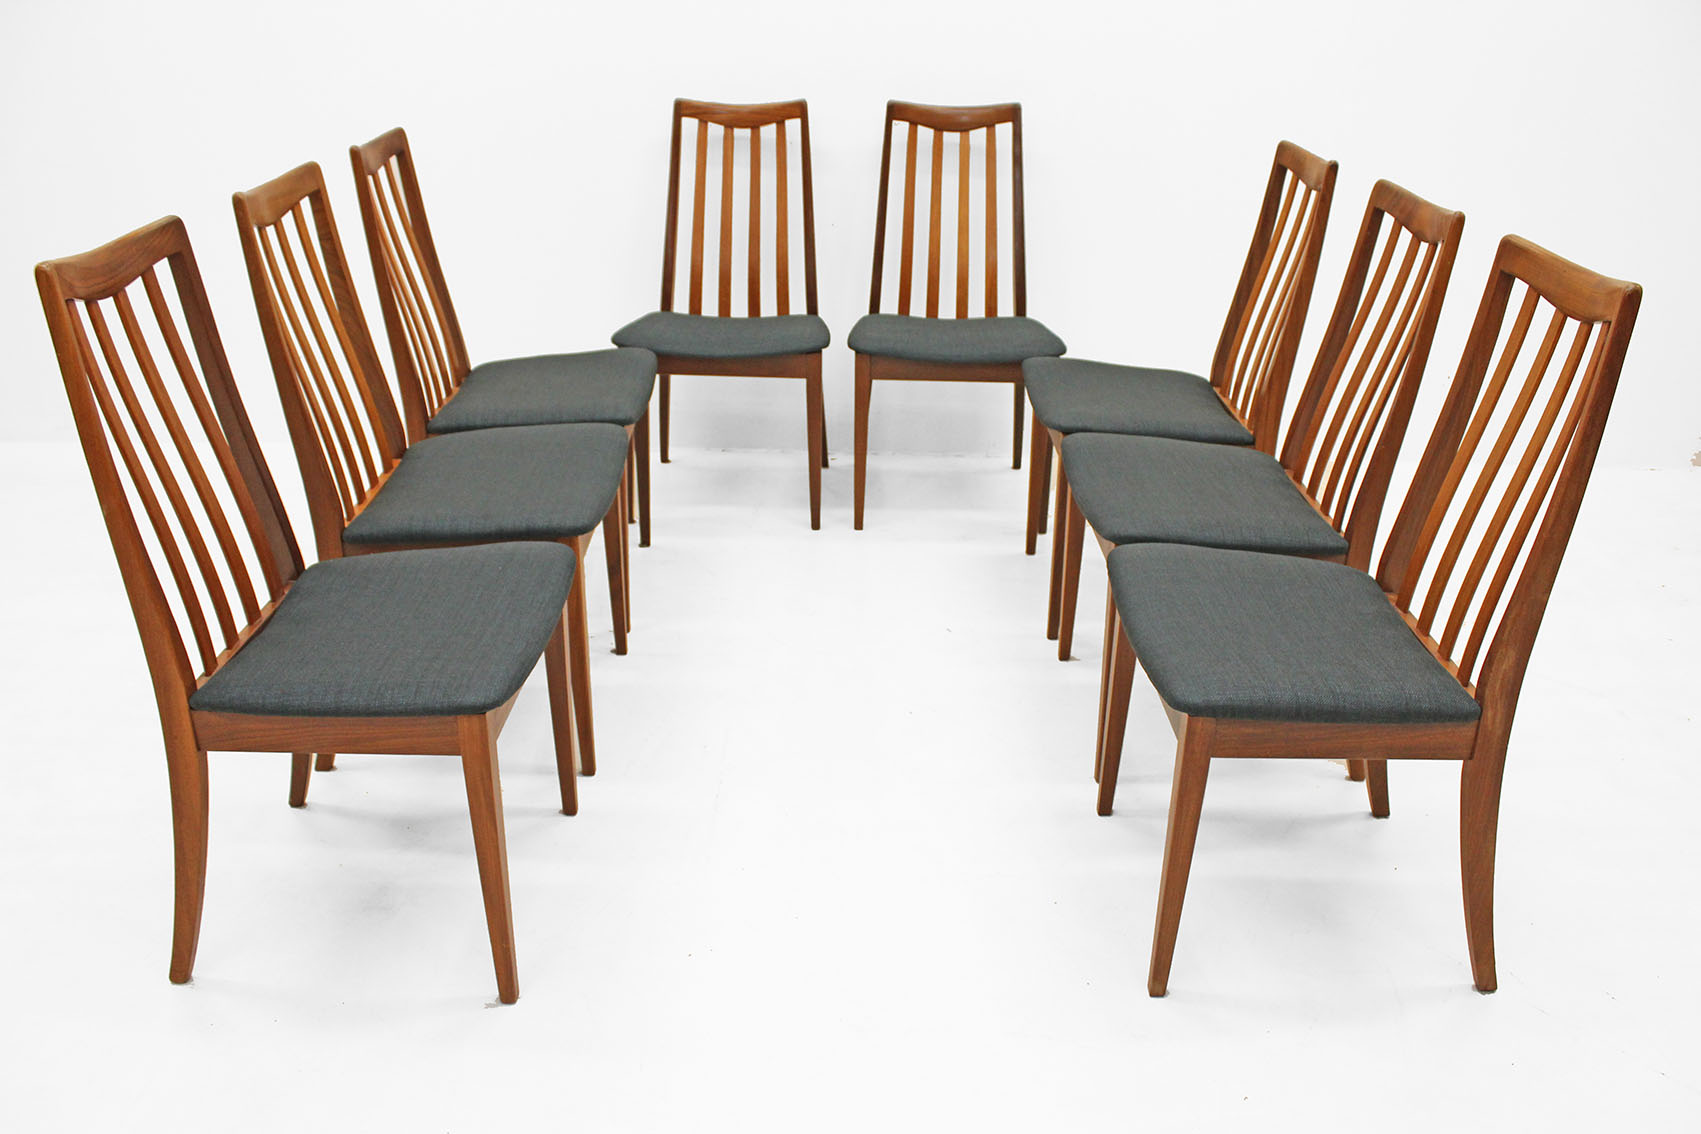 set of 8 chairs by G-plan